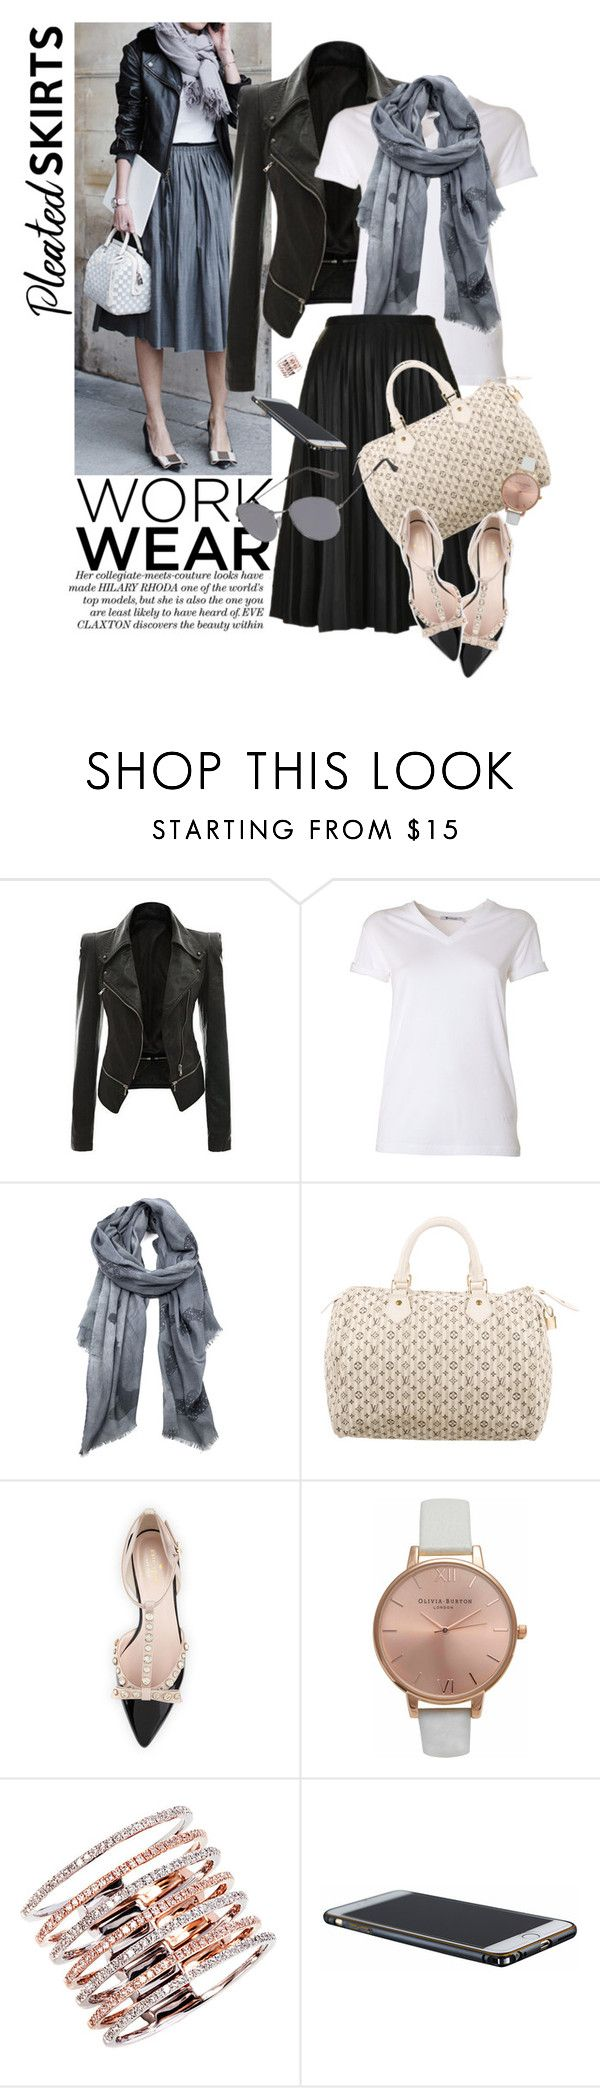 """Summer Work Wear"" by reginakos ❤ liked on Polyvore featuring T By Alexander Wang, Topshop, Louis Vuitton, Kate Spade, Olivia Burton, leatherjacket, pleatedskirts and workaholic"